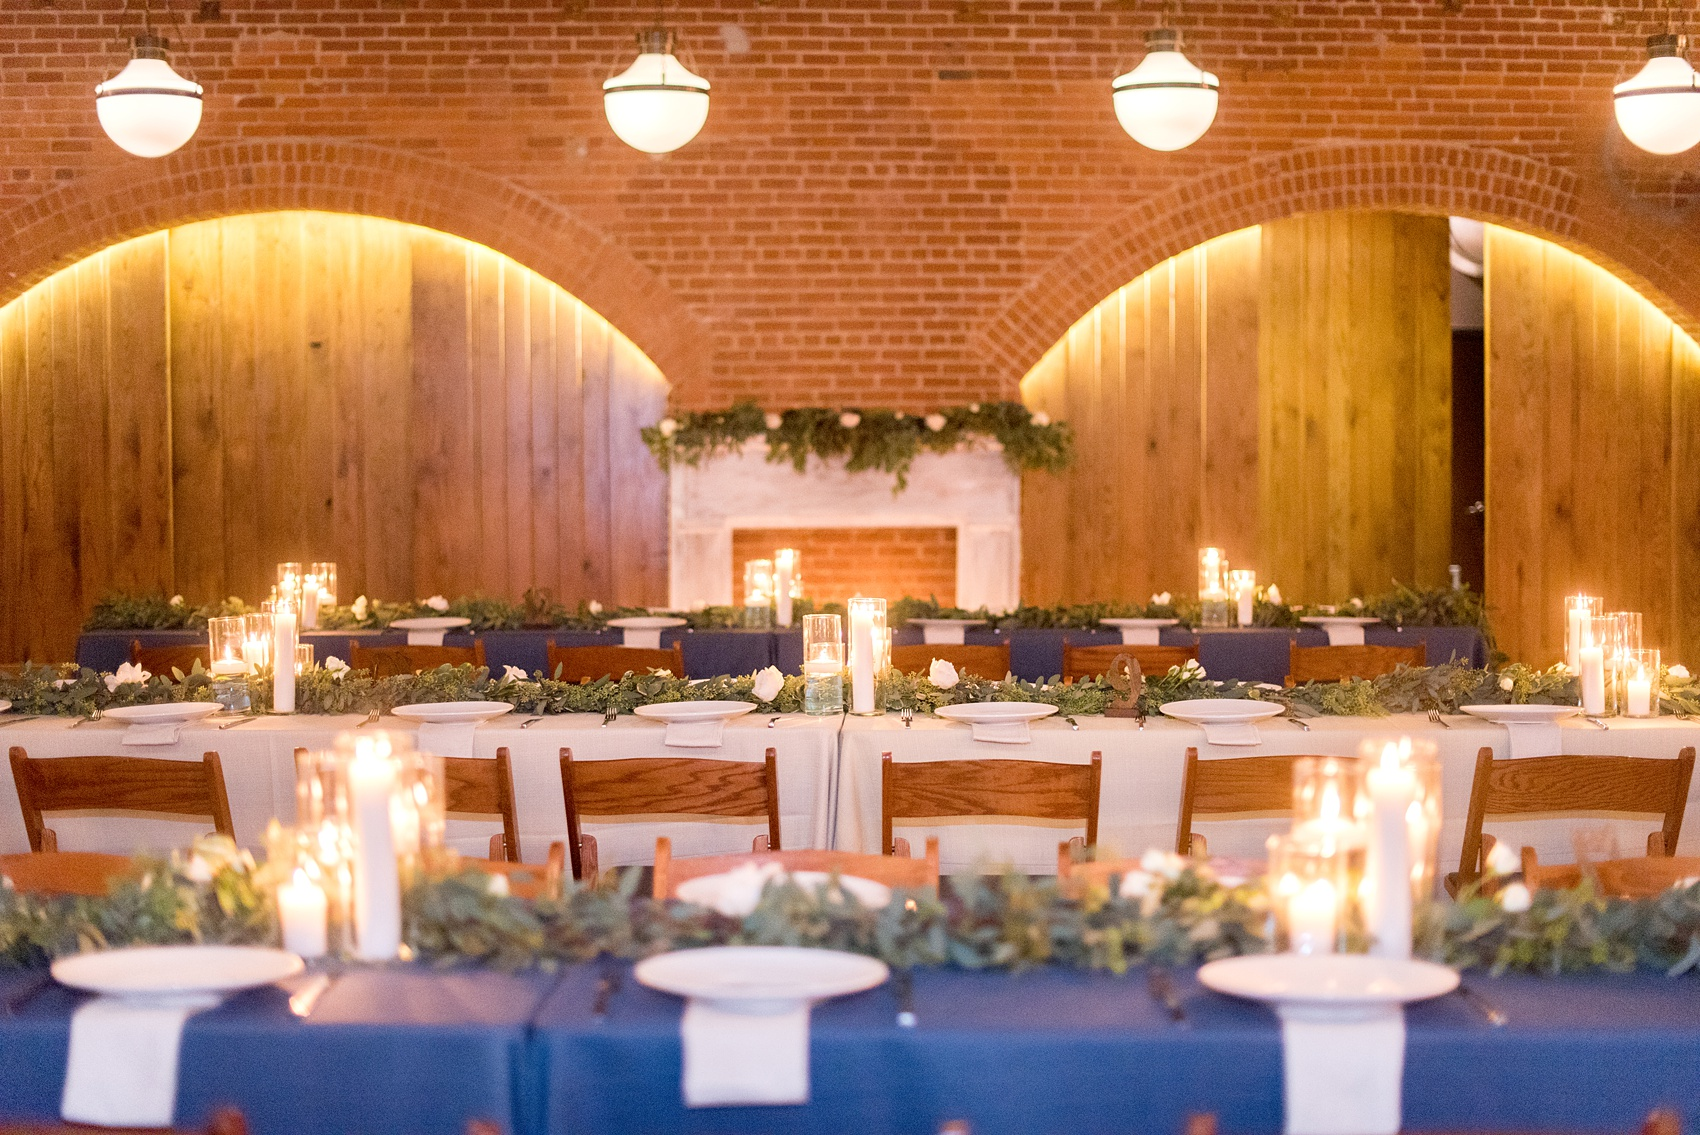 Durham wedding photos at The Cookery by Mikkel Paige Photography in North Carolina. The reception room had rectangular tables with garland greenery and candlelight illuminating the room.